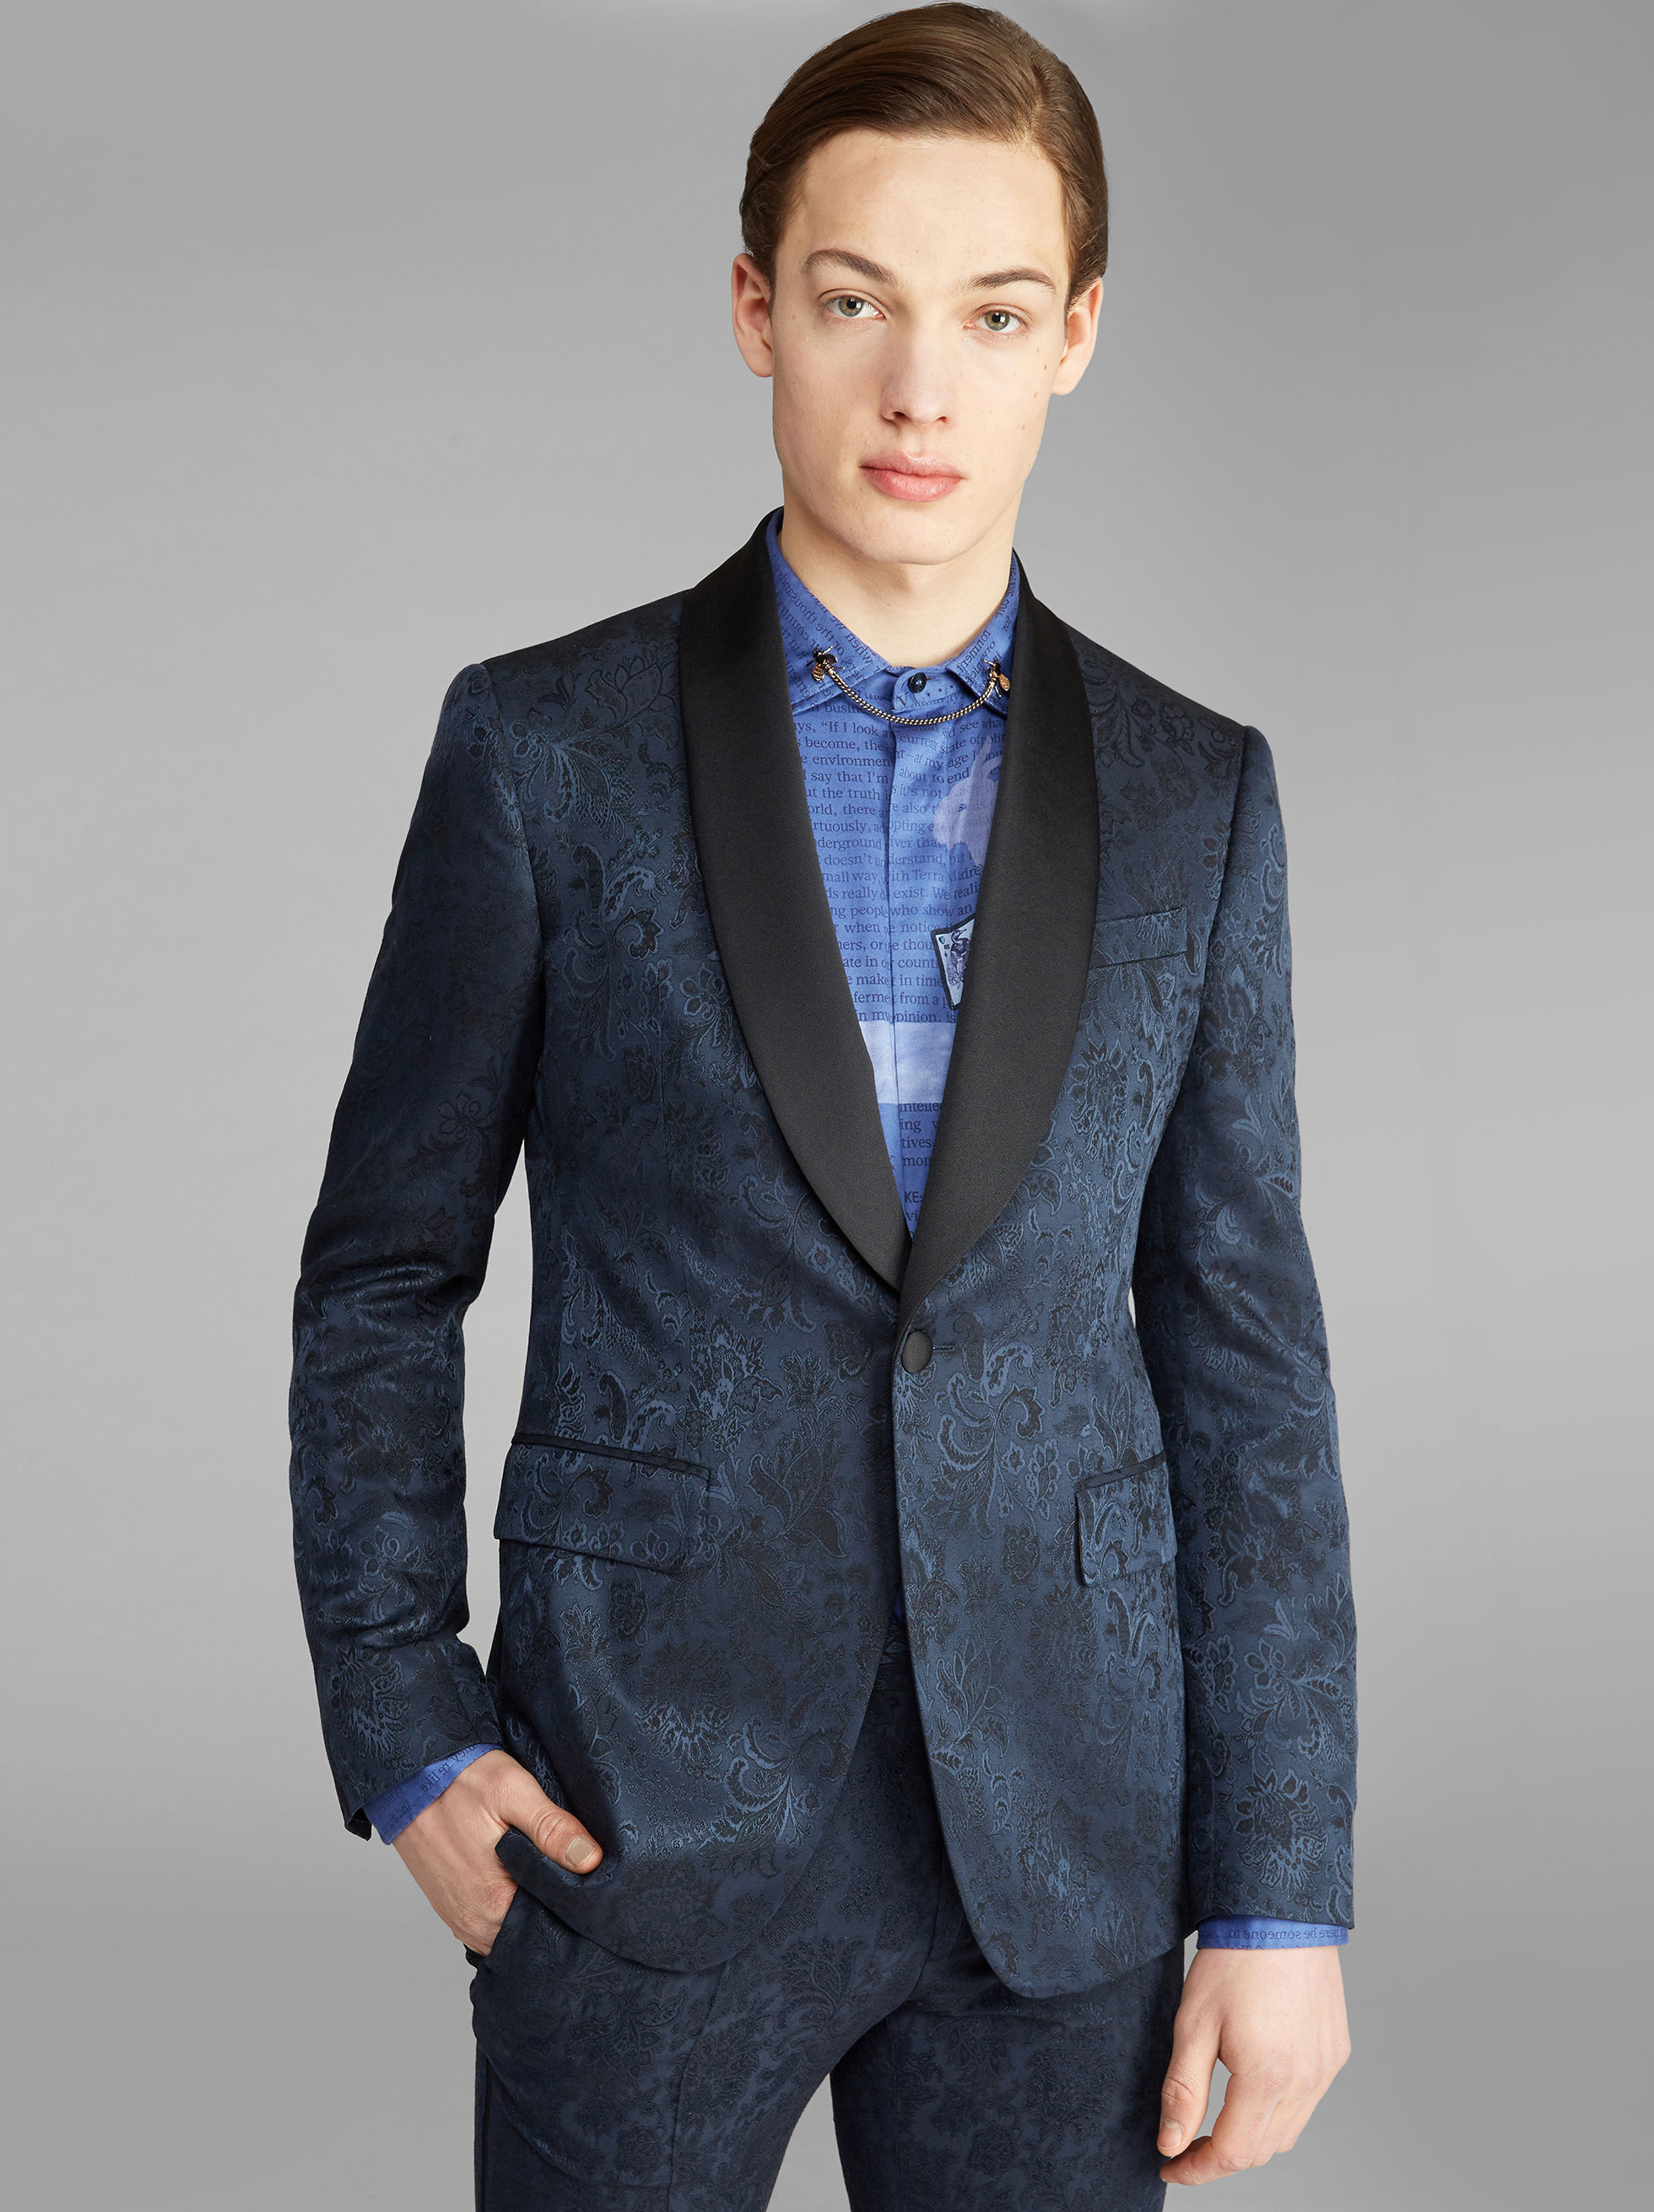 VESTE DE SMOKING SEMI-TRADITIONNELLE EN JACQUARD